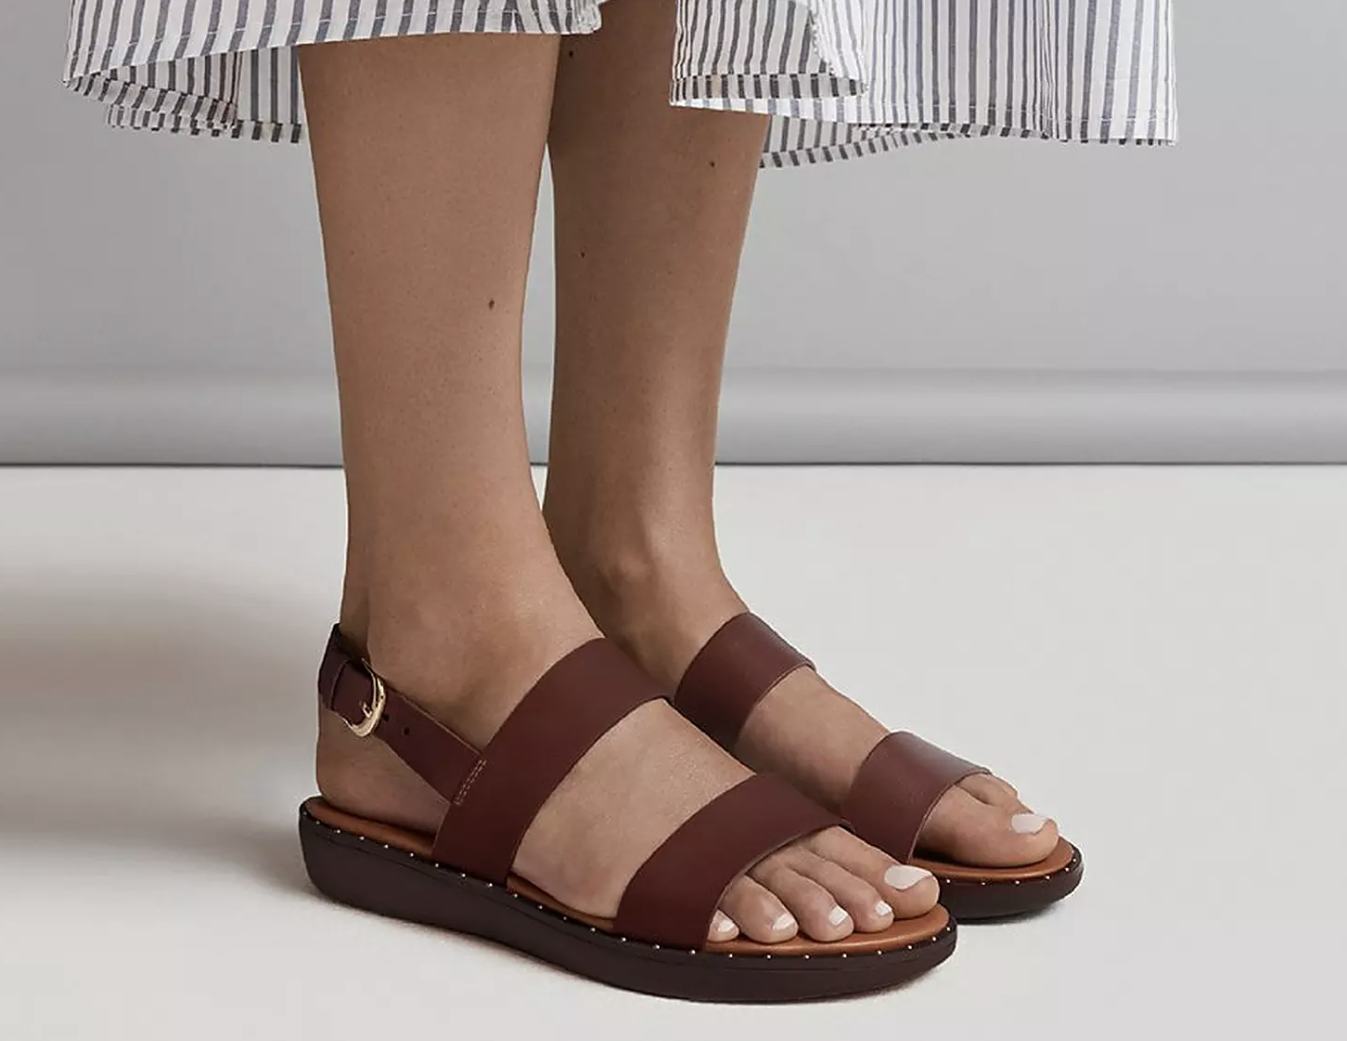 A model wearing a pair of dark brown leather sandals with small studs along the outsole